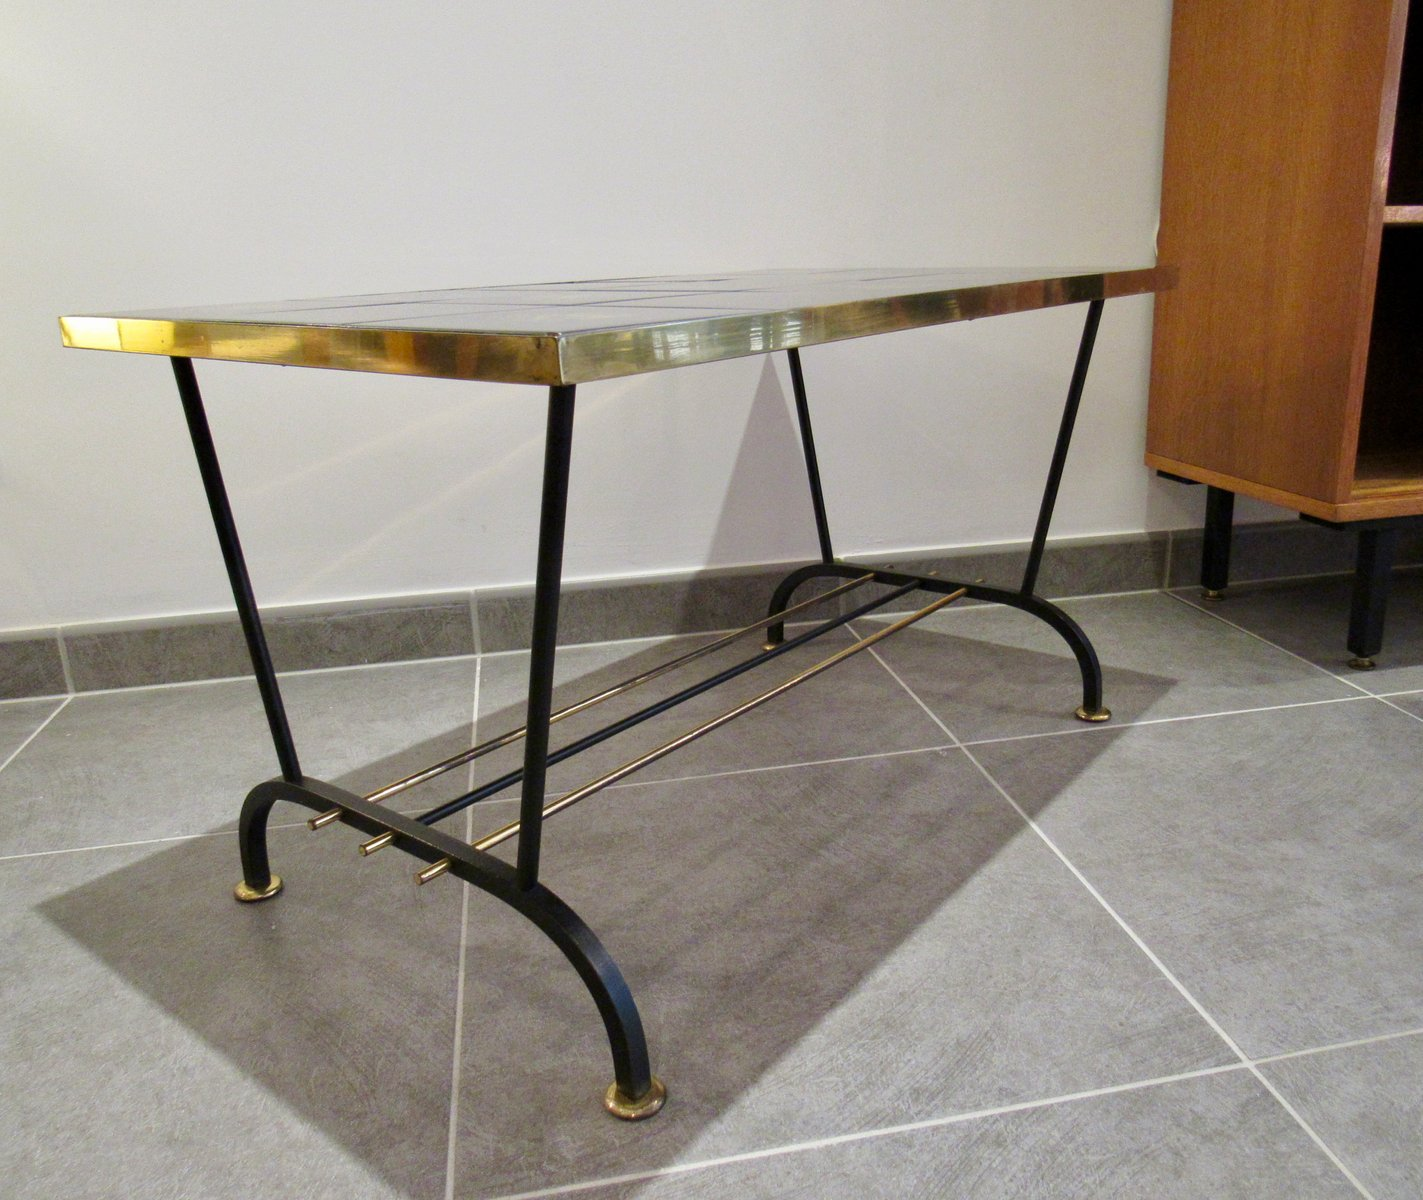 Vintage Coffee Table In Black And Gold 10. $585.00. Price Per Piece